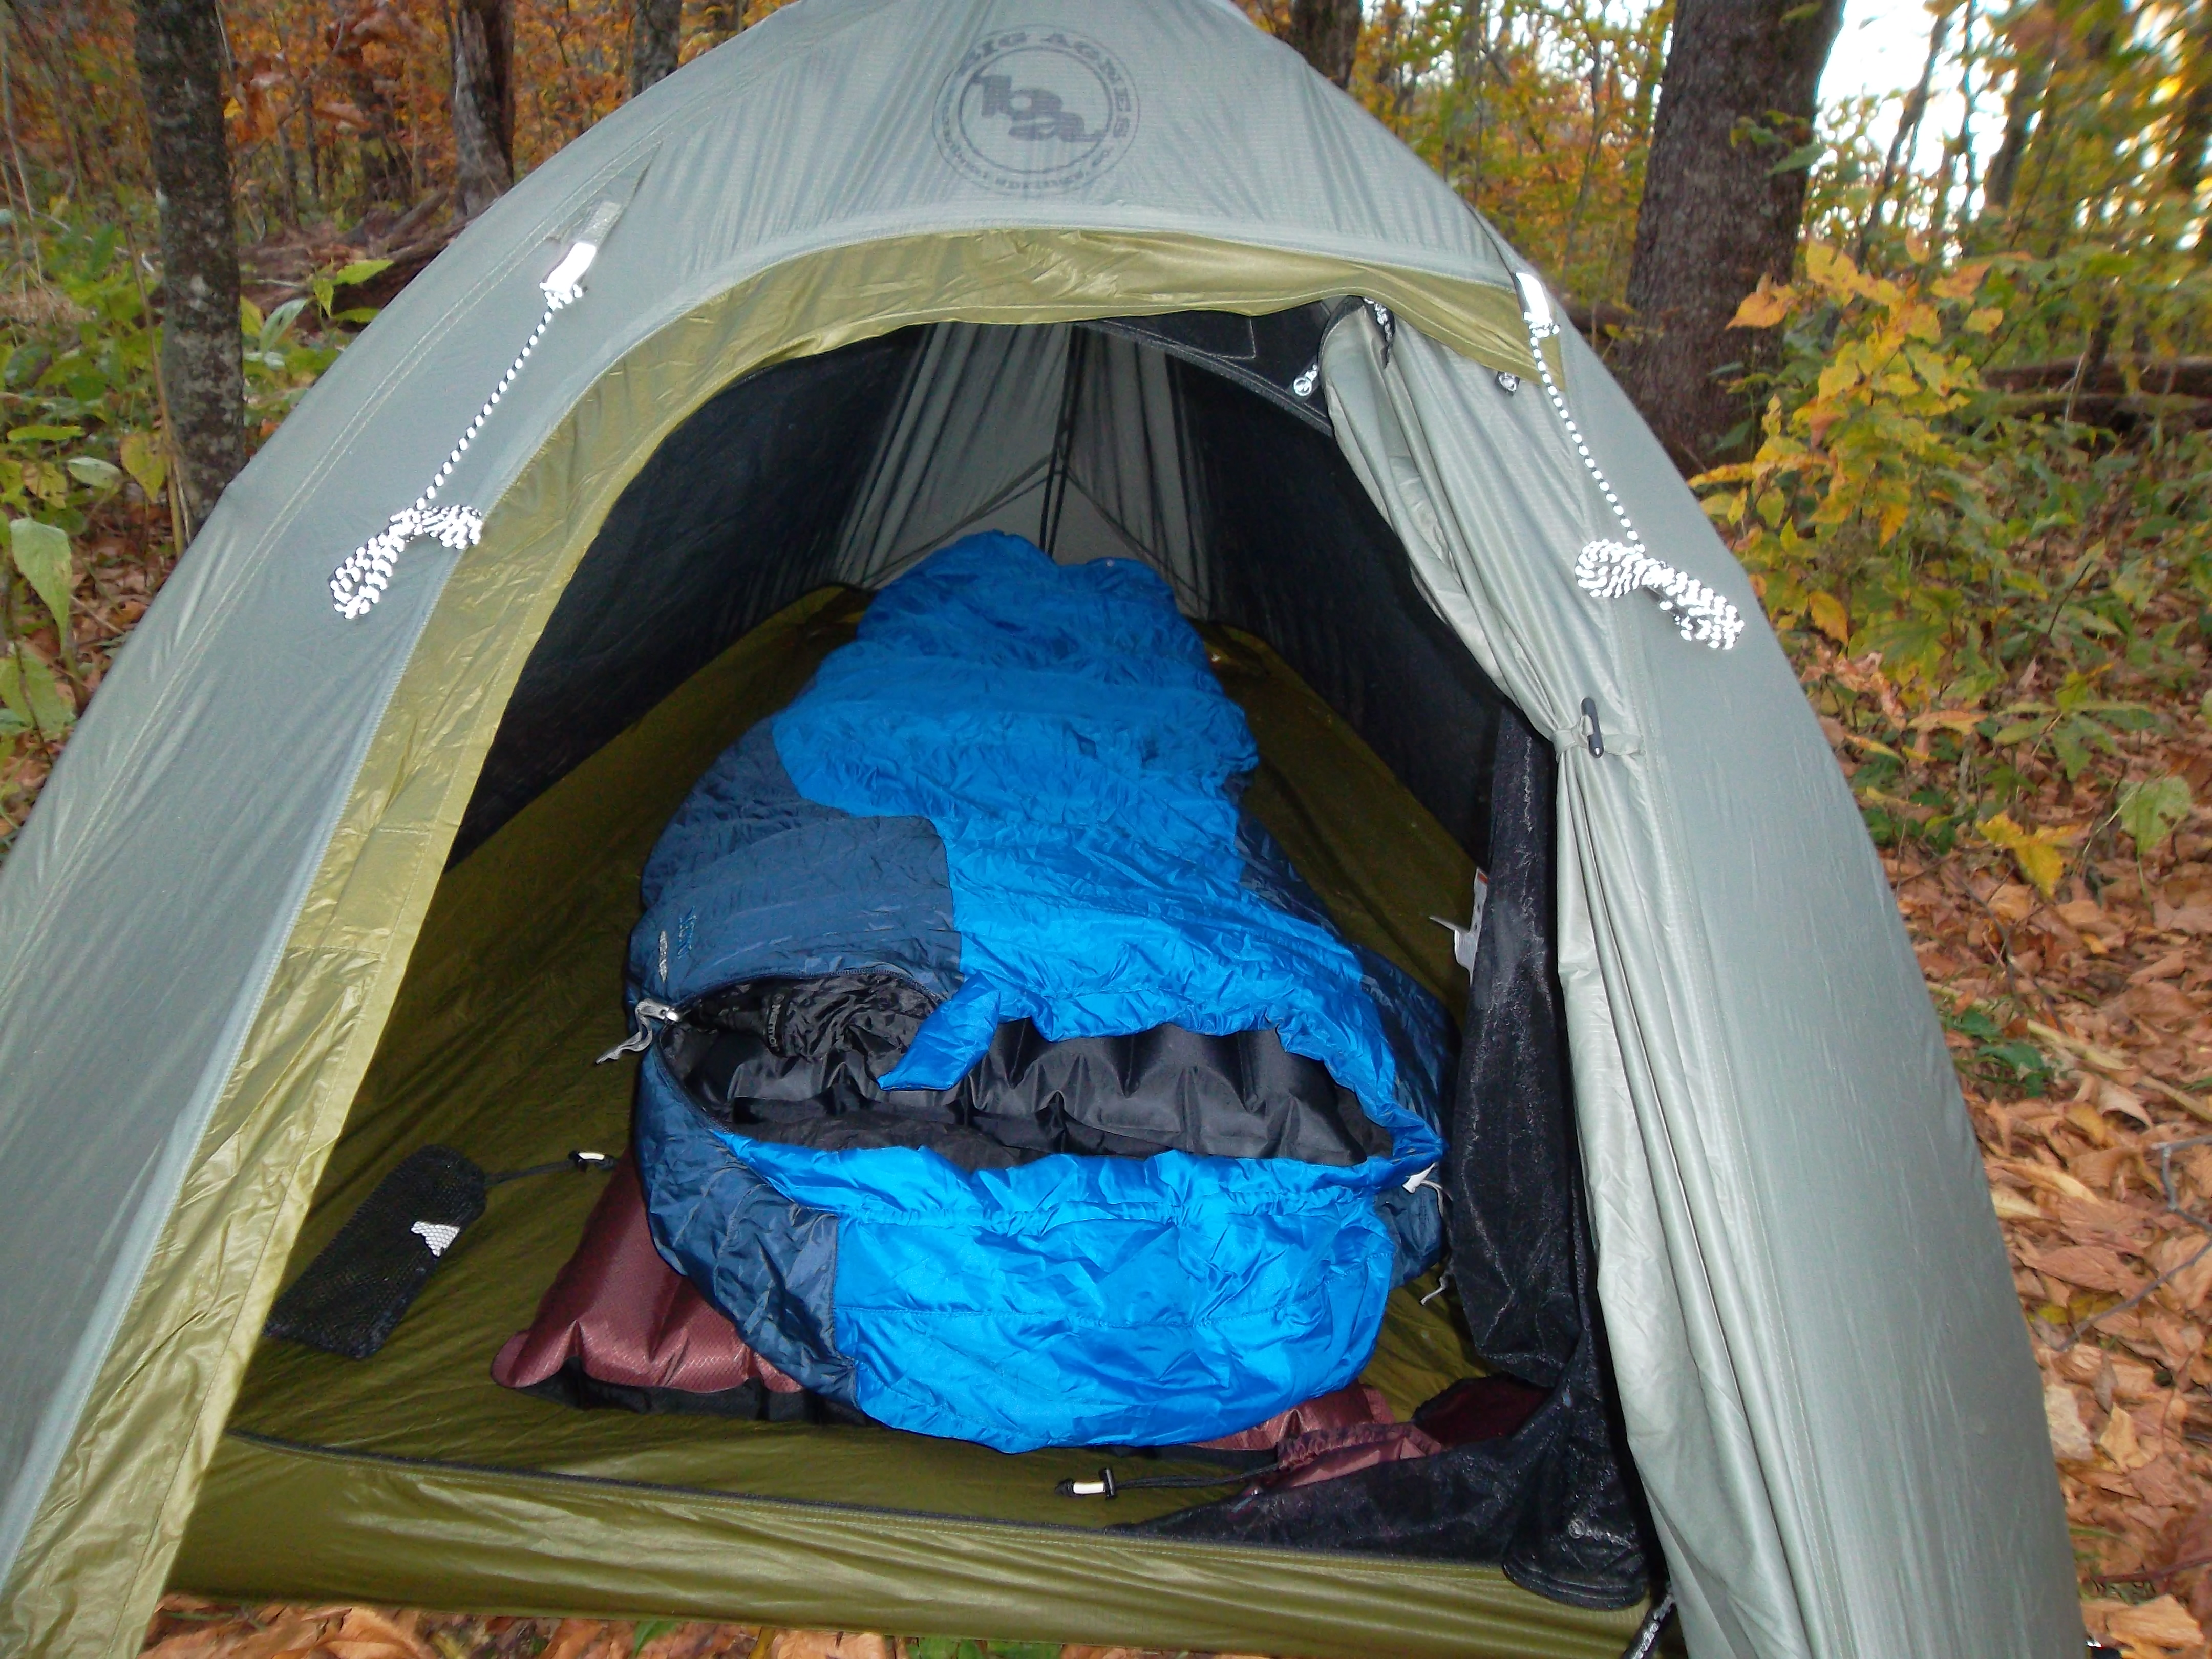 Itu0027s a pricey tent ... & Big Agnes Seedhouse SL1 Tent Review (2012 update) | TreeLineBackpacker